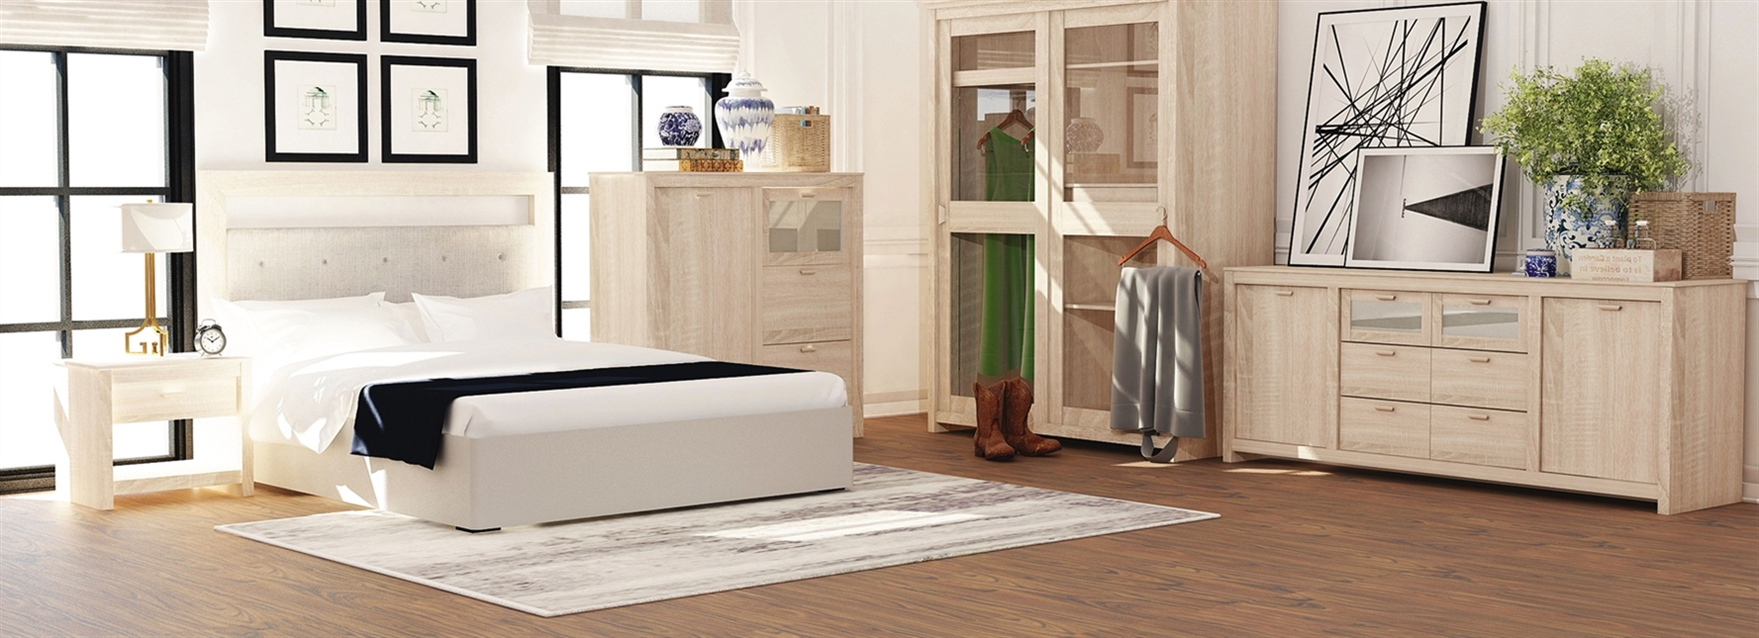 Garvani Furniture Ravenna Series